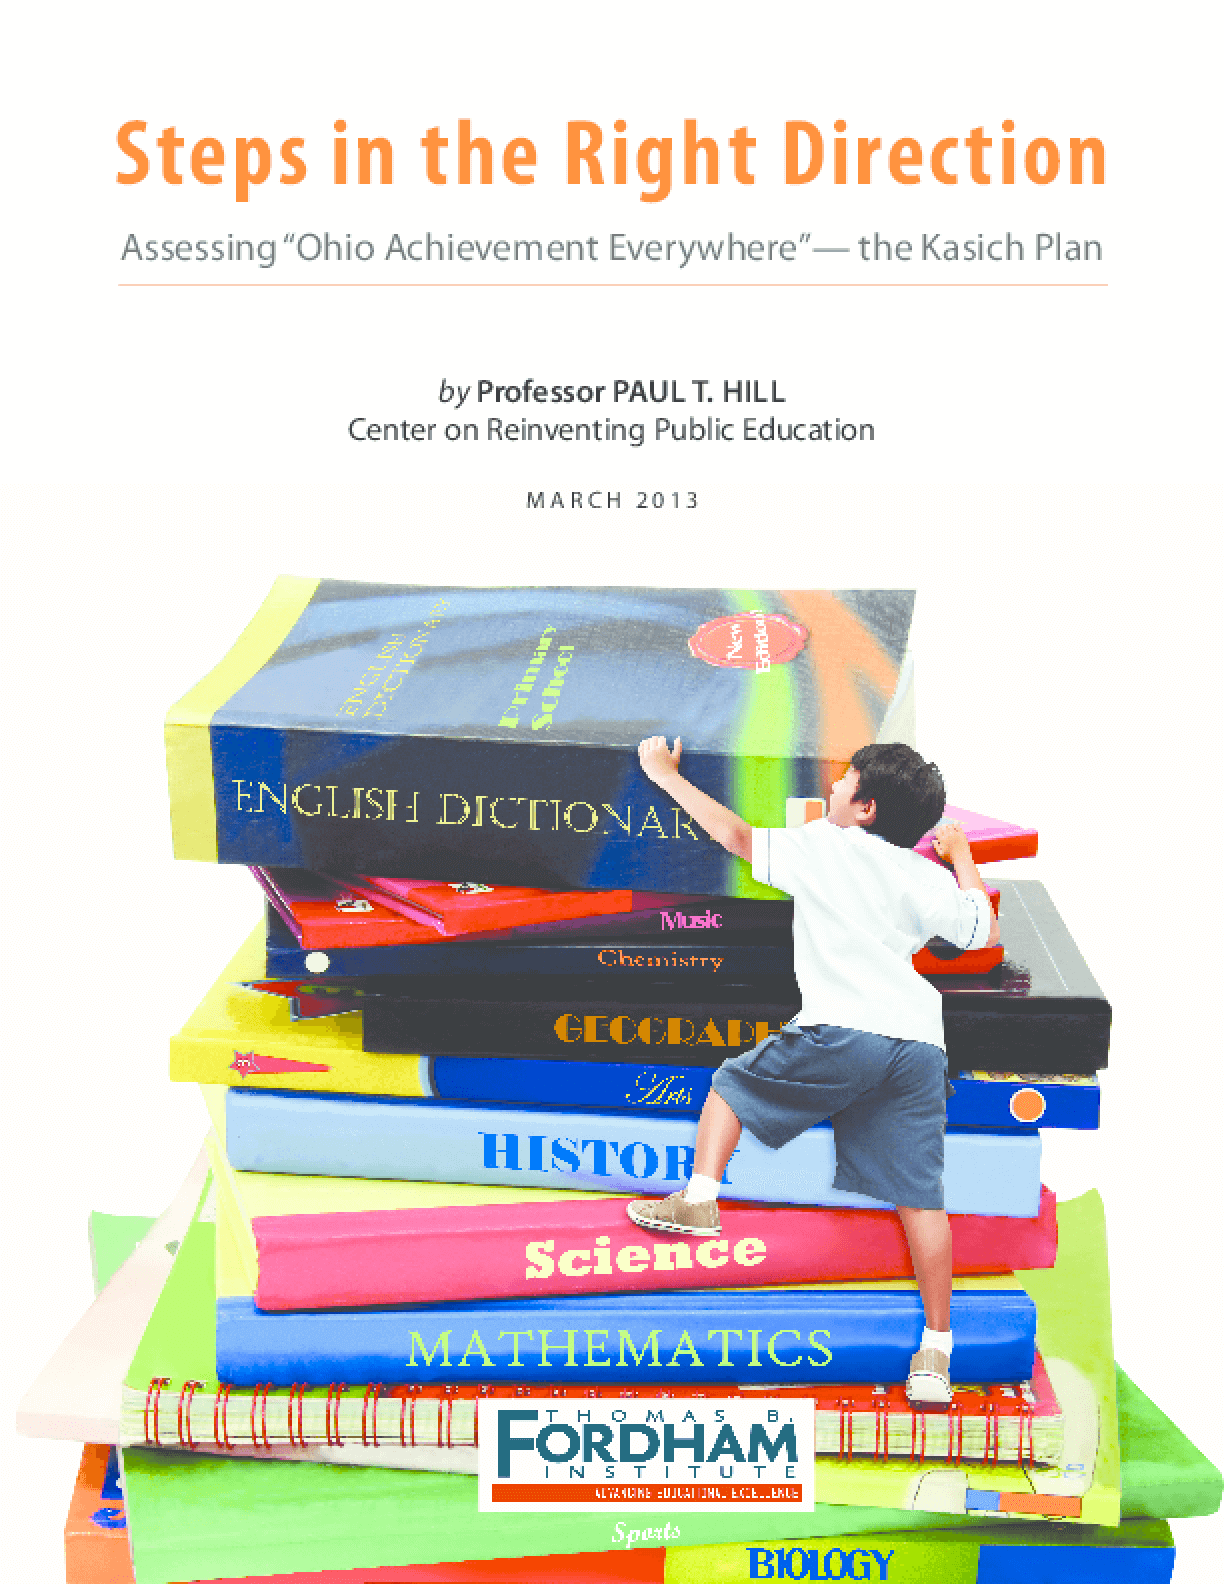 Steps in the Right Direction: Assessing Ohio Achievement Everywhere -- the Kasich Plan